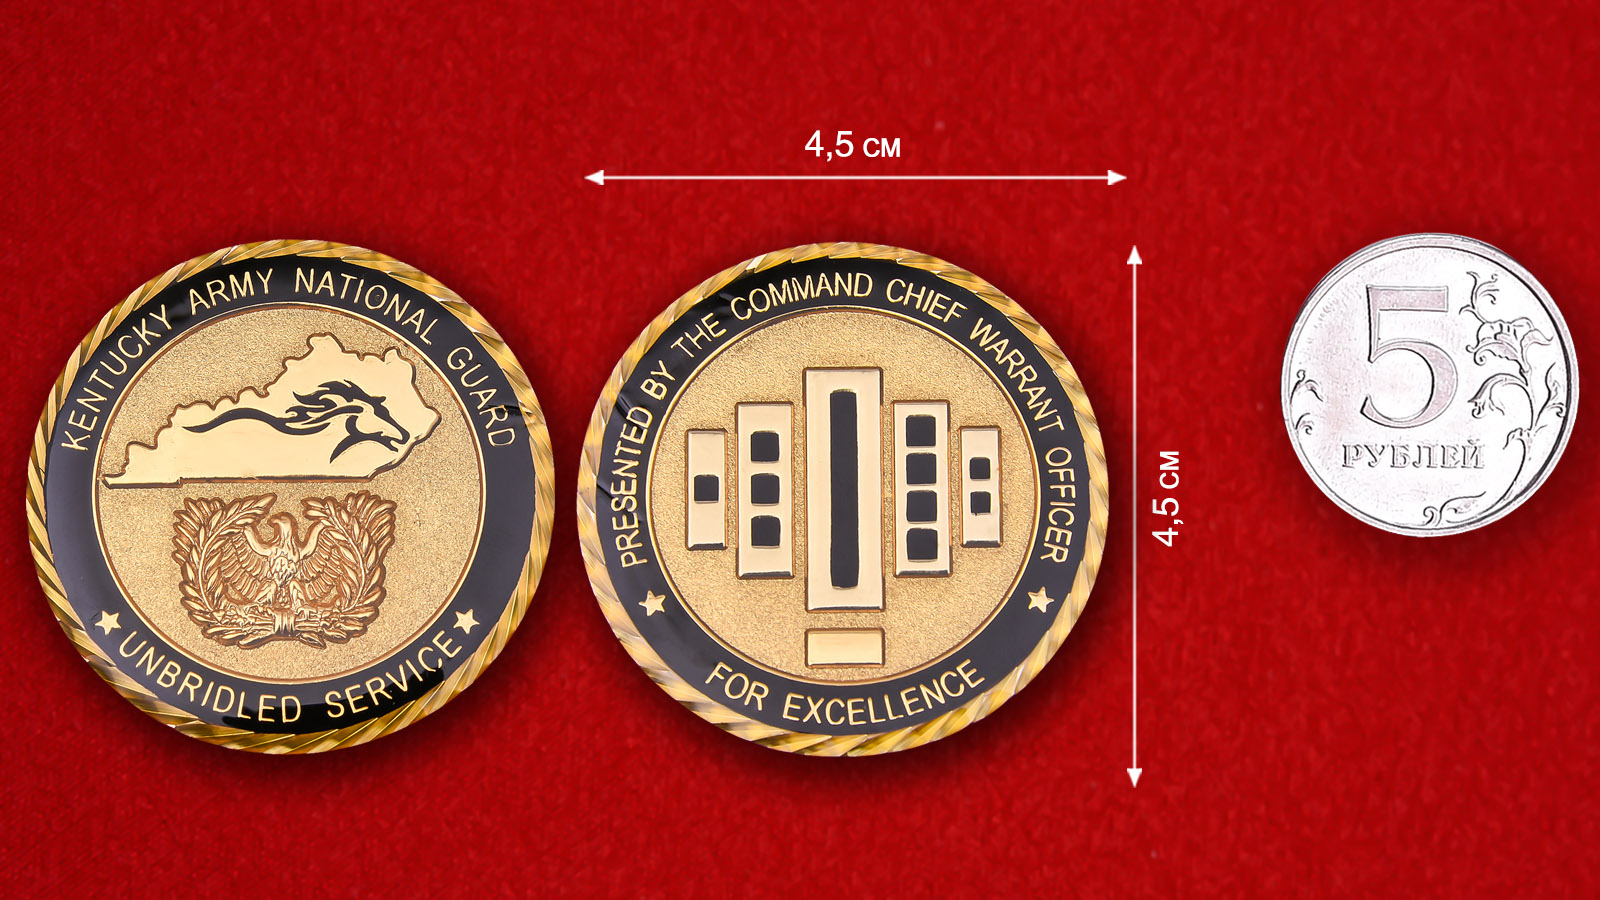 For Excellence presented the command chief warrant officer Kentucki Army National Guard Challenge Coin - comparative size